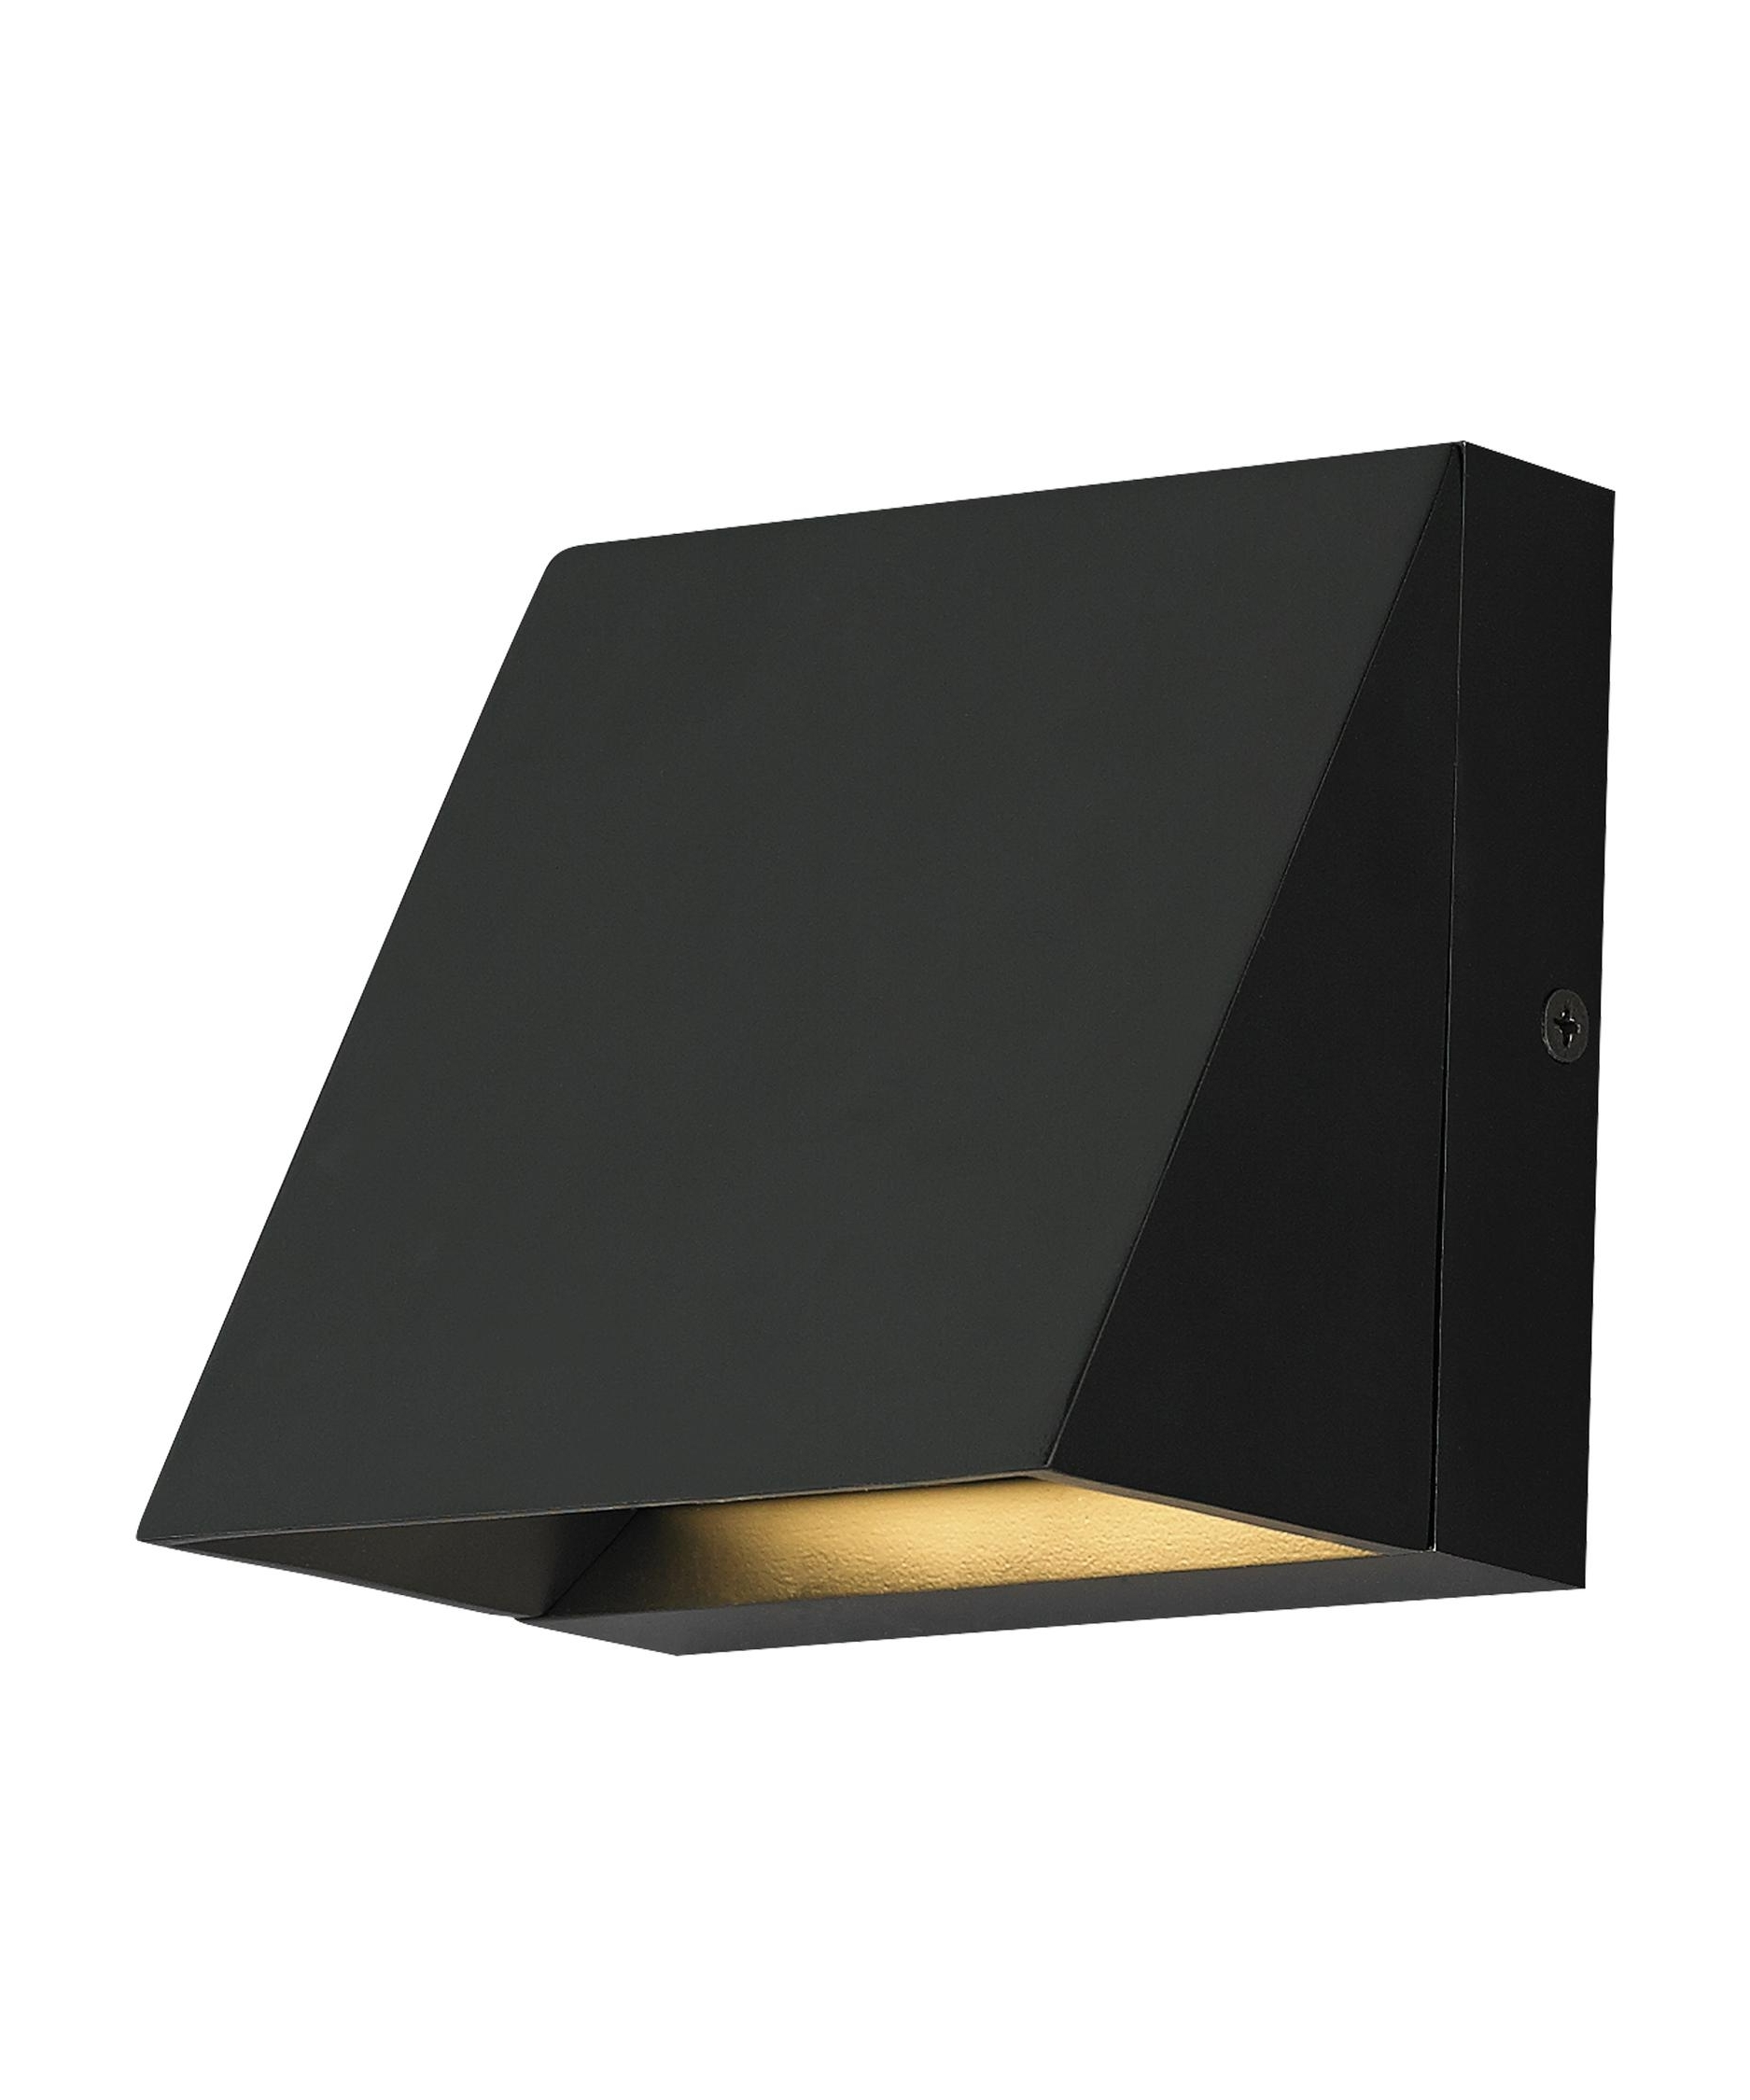 Newest Commercial Outdoor Wall Lighting Inside Tech Lighting 700Wspits Pitch 5 Inch Wide 1 Light Outdoor Wall Light (View 17 of 20)